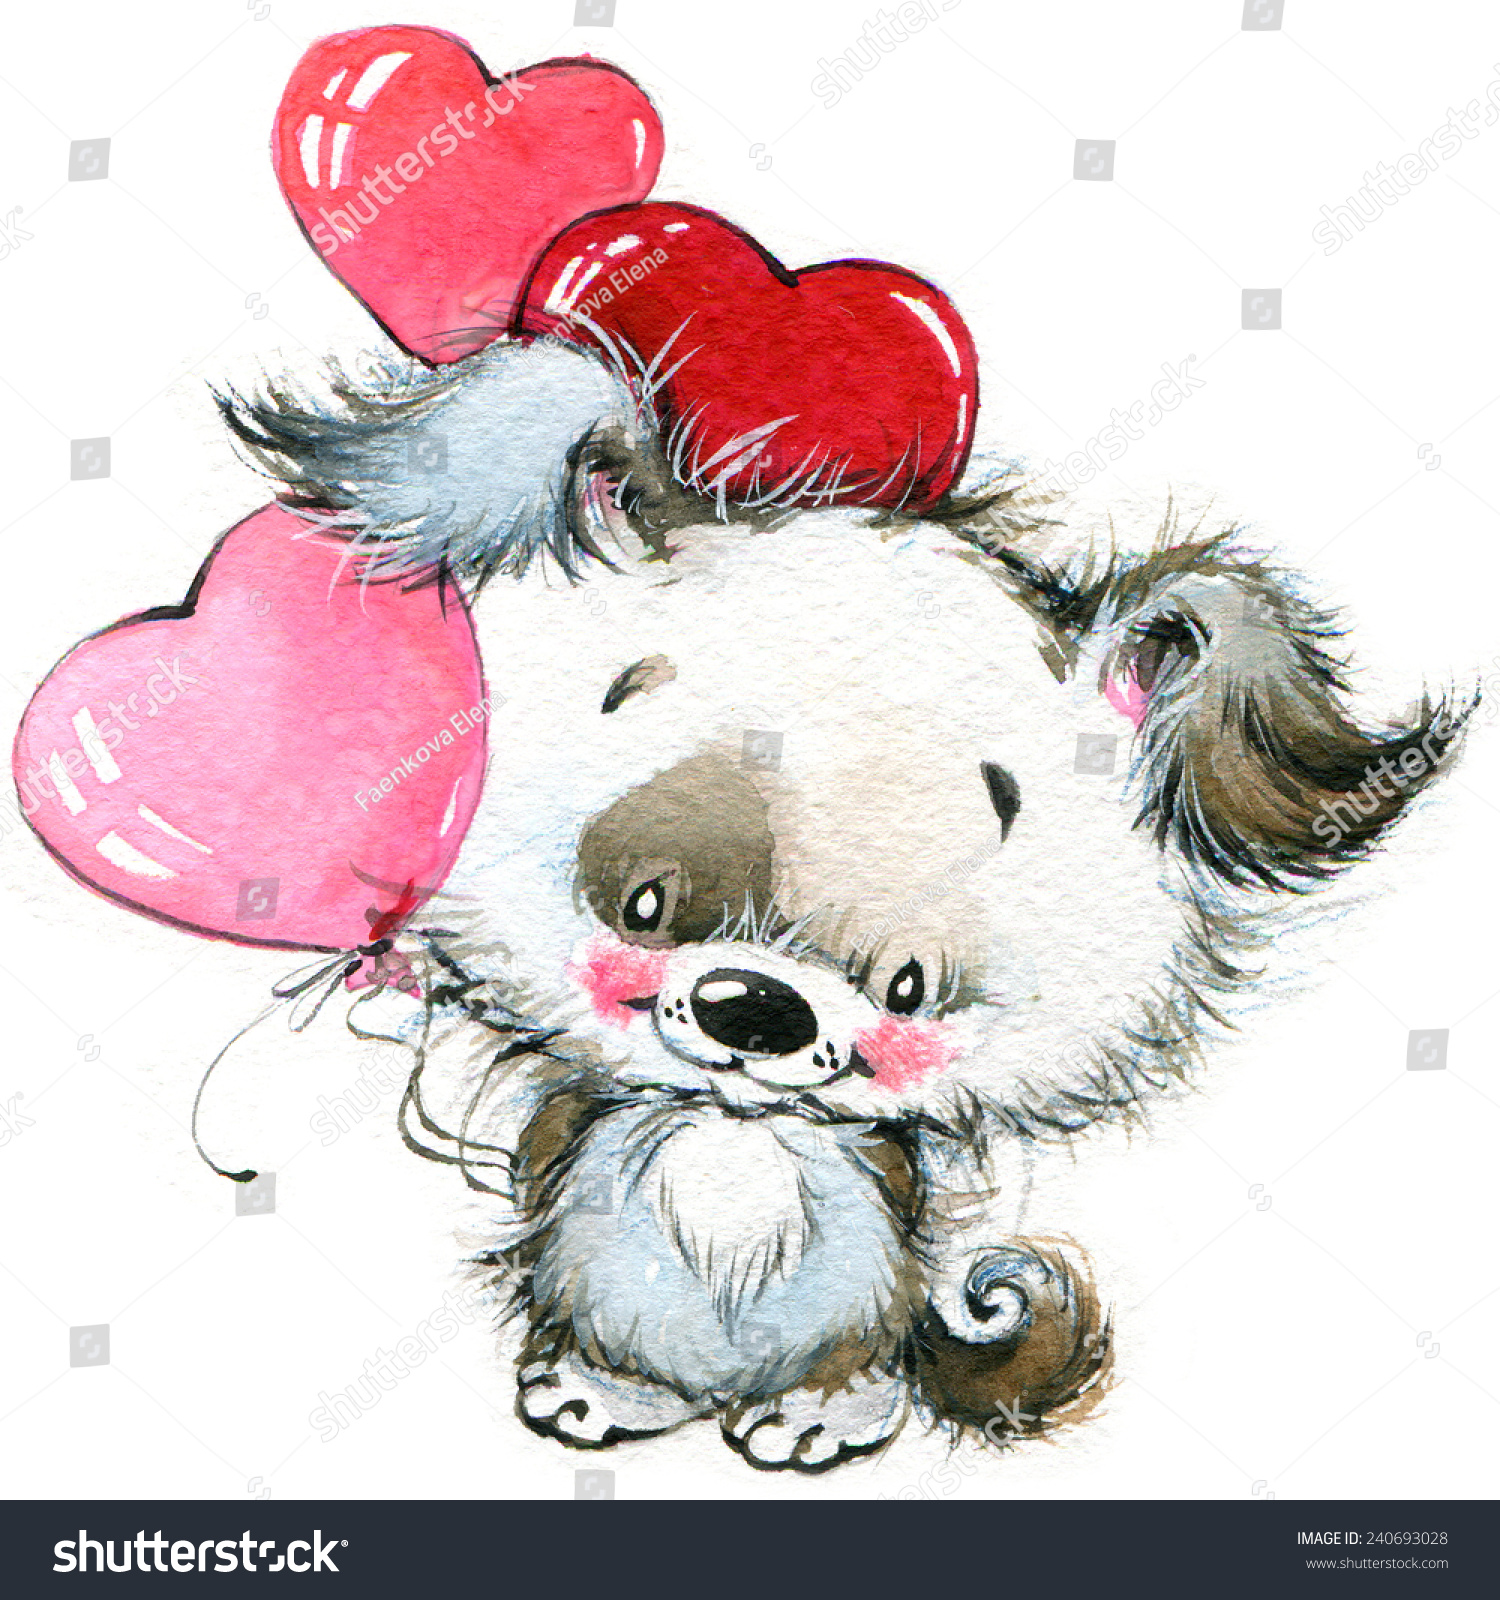 Valentines day cute animals loves heart stock illustration - Valentine s day animal pics ...